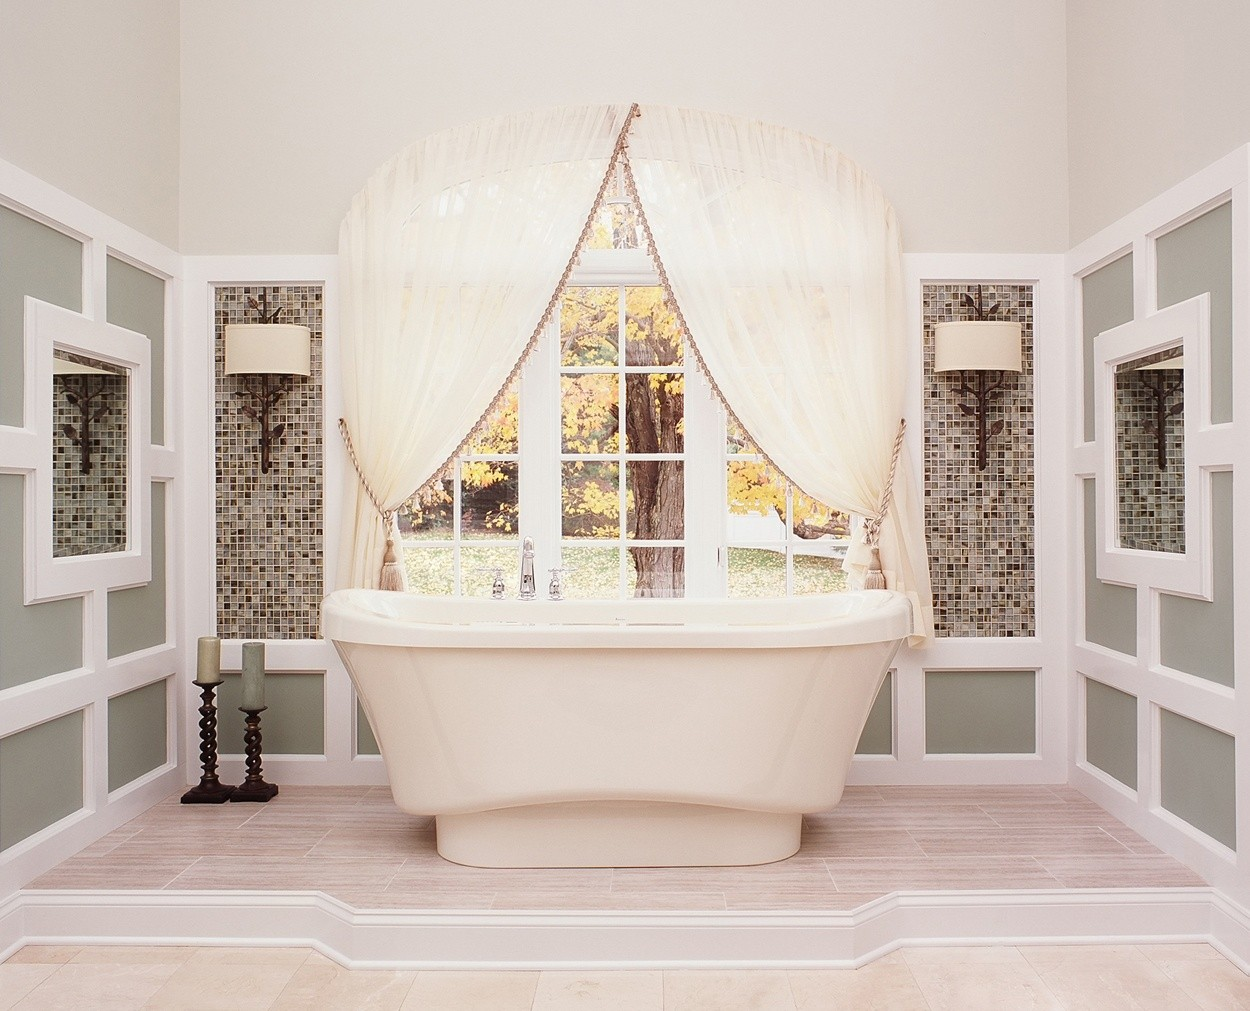 Intricate detailing breaks up the lines in this oversized master bath.